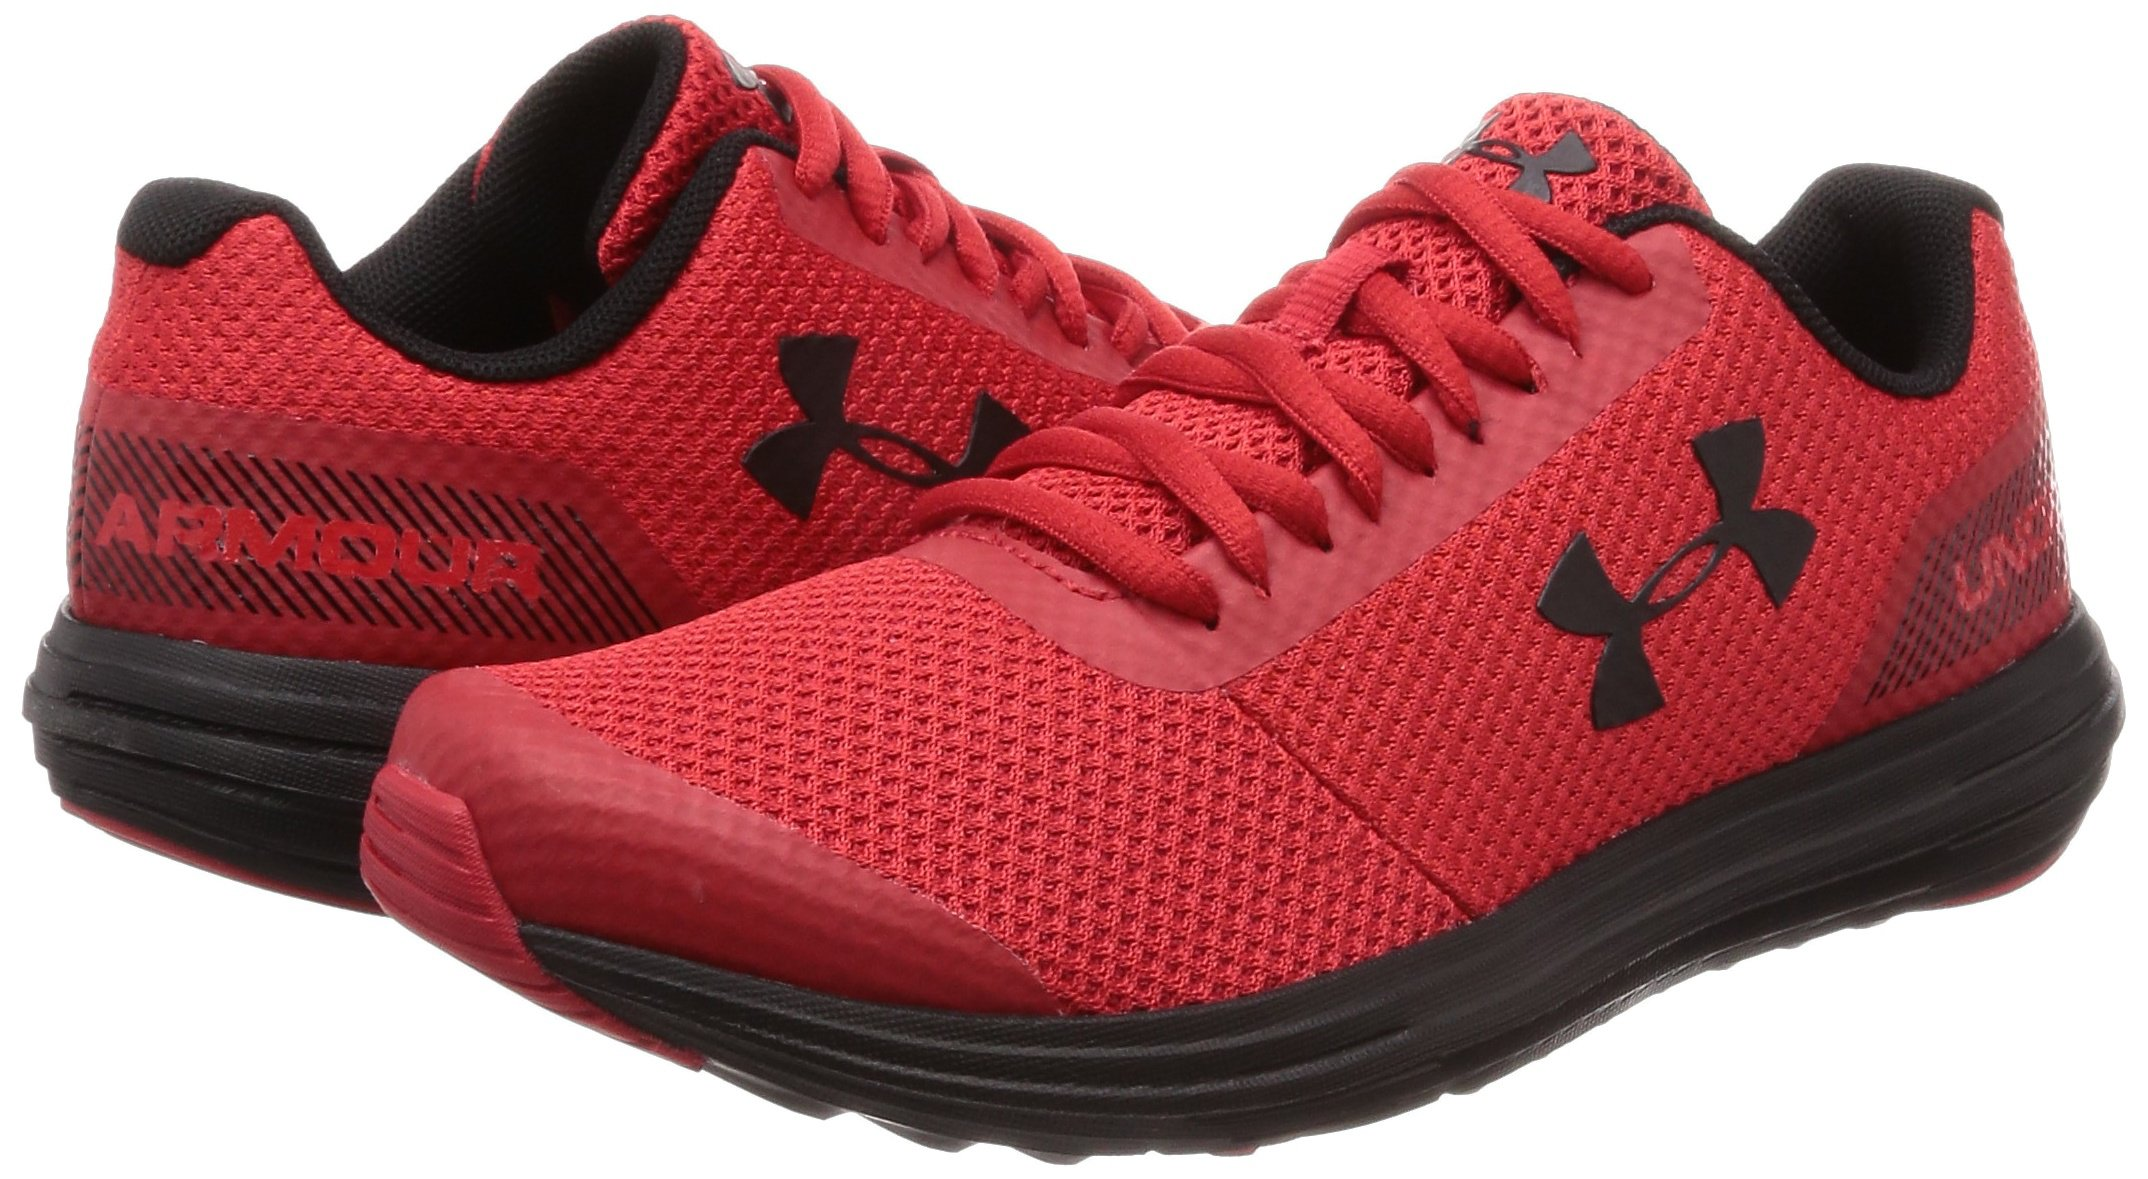 Under Armour Boys' Grade School Surge RN Sneaker, Red (600)/Black, 3.5 by Under Armour (Image #5)